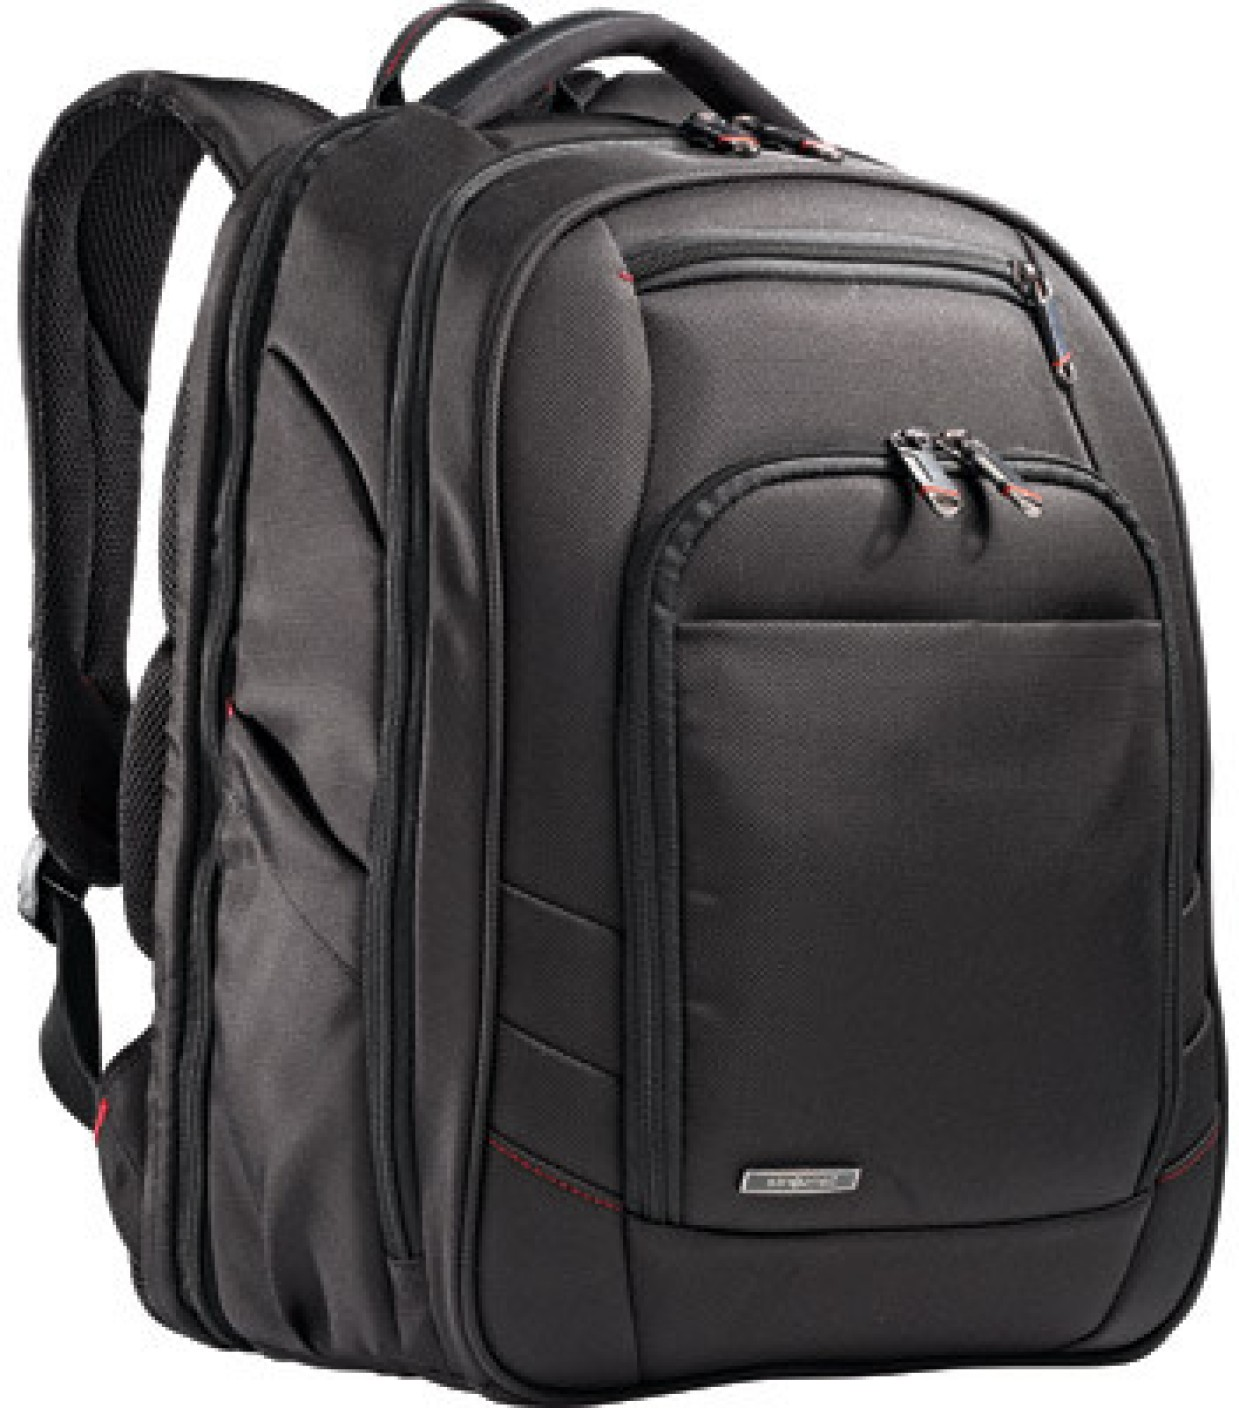 Samsonite 17 Inch Laptop Backpack 49210 1041 Price In